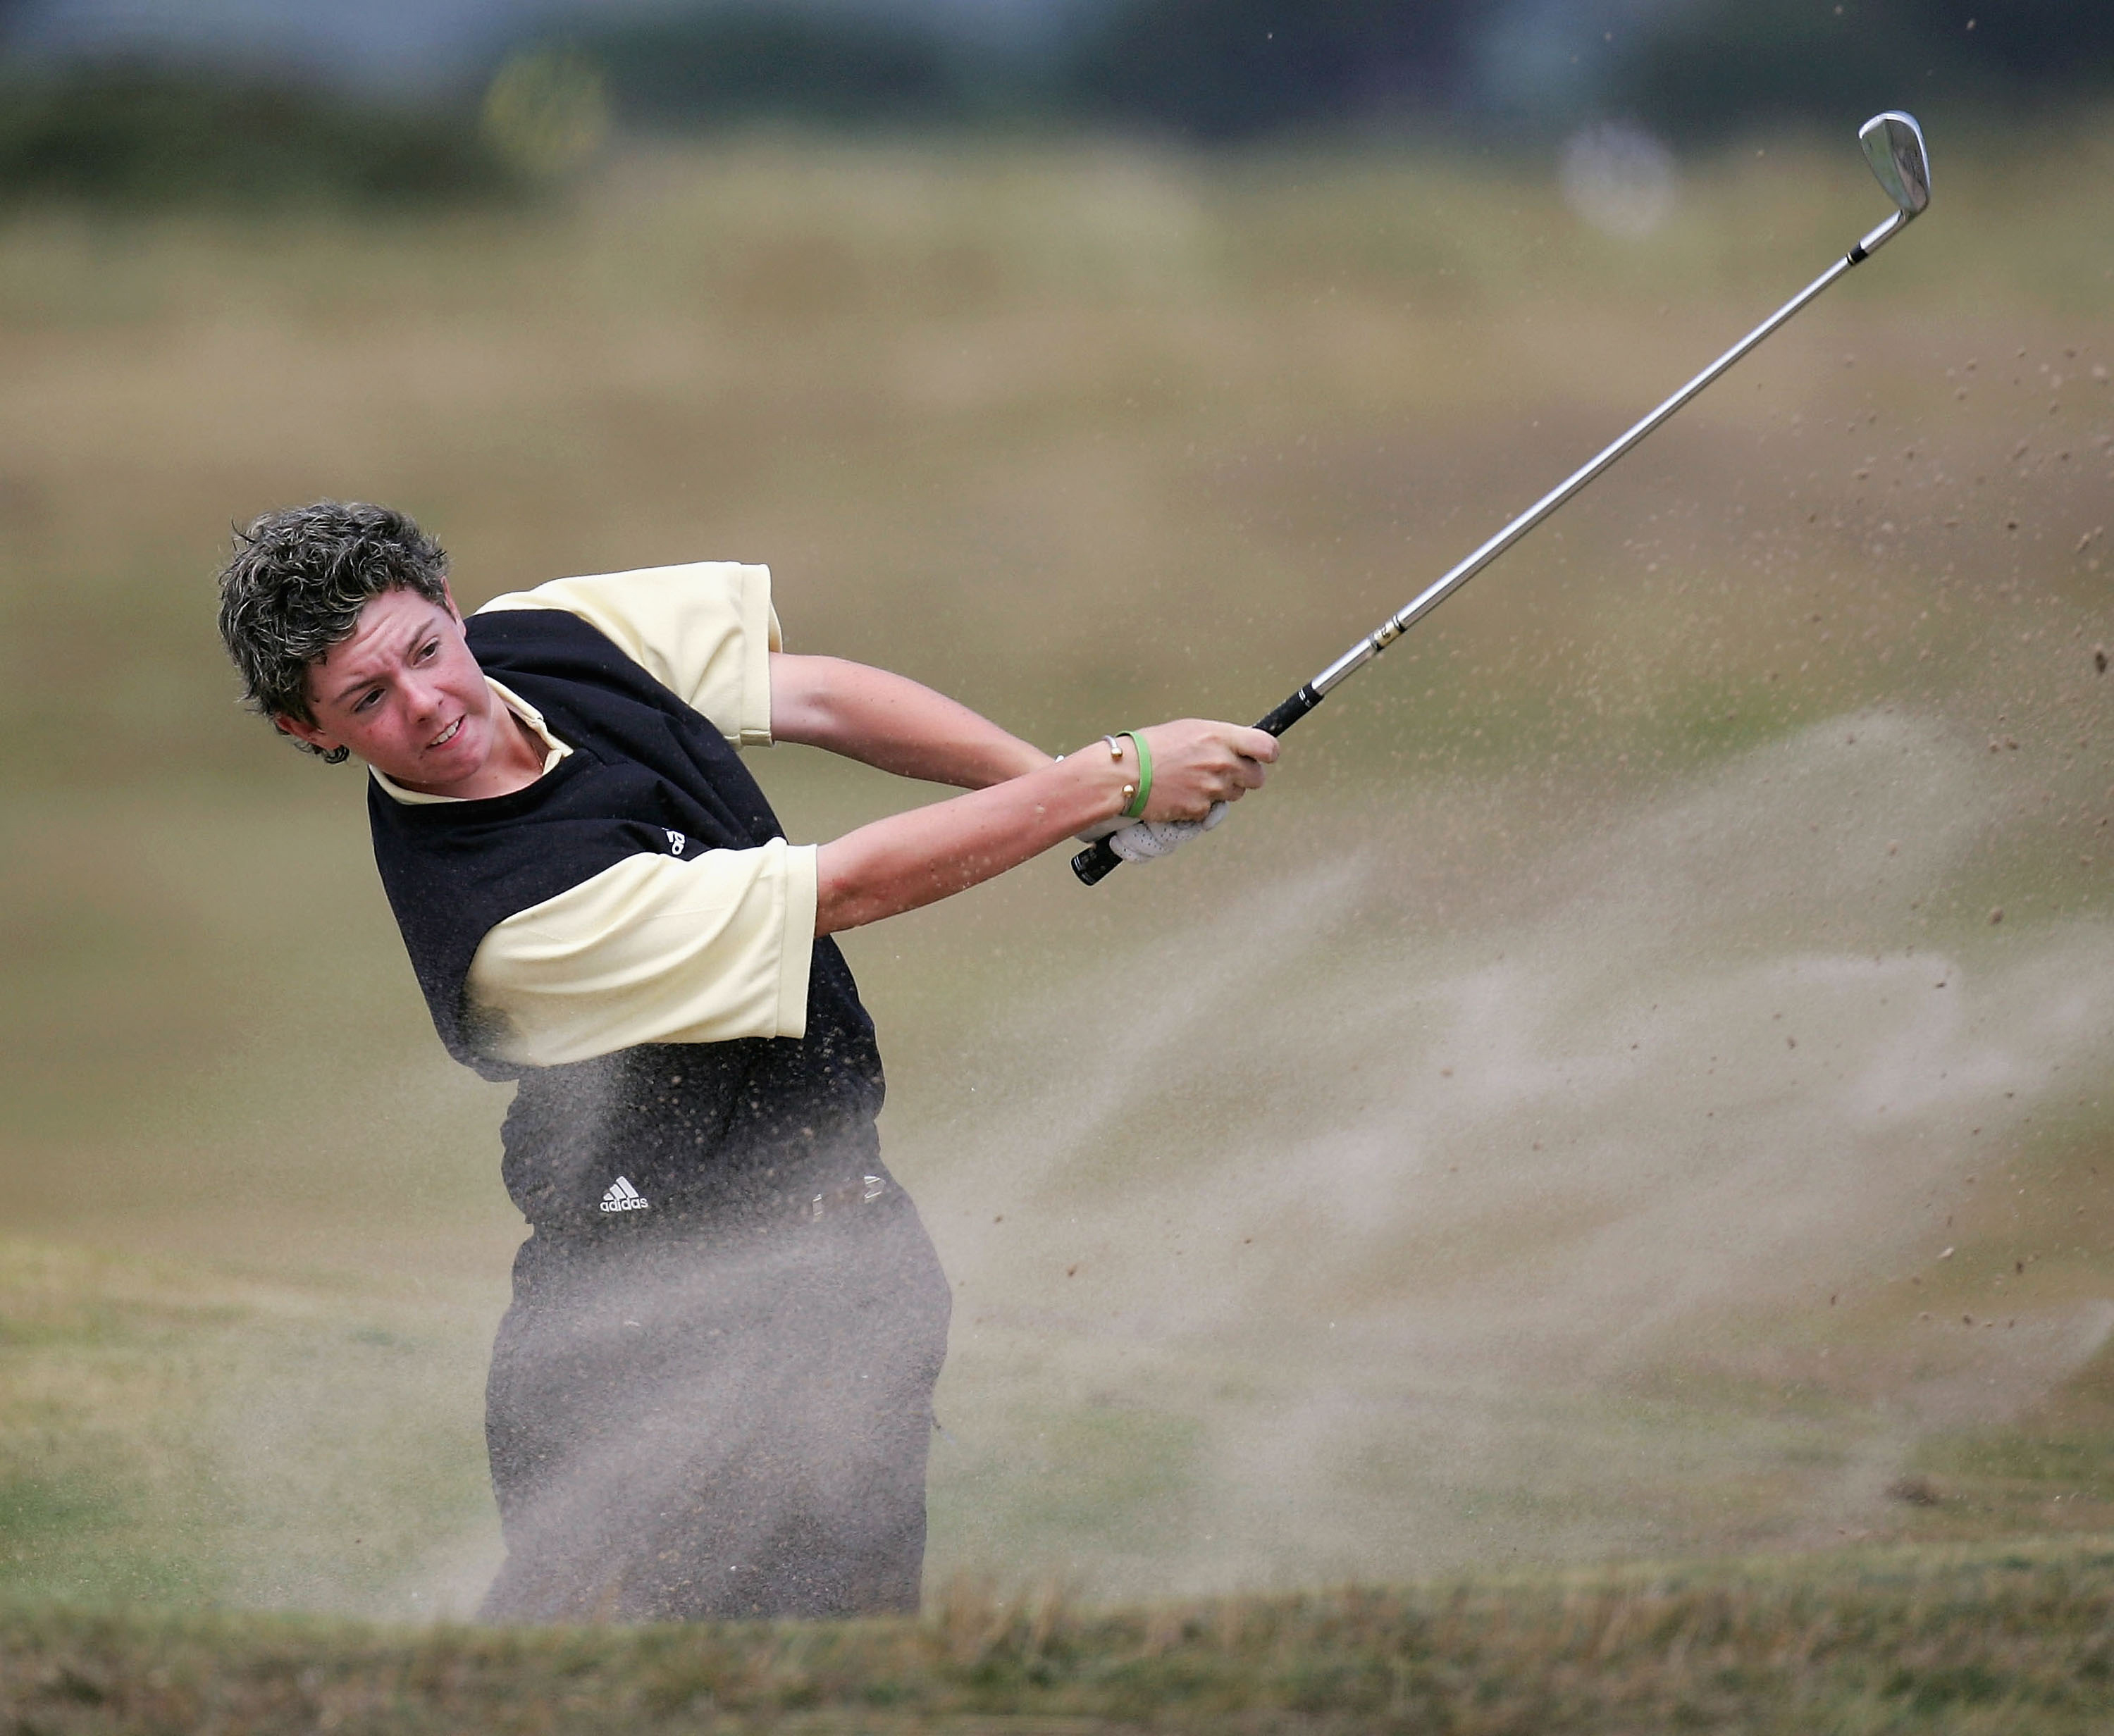 Rory McIlroy at the 2004 Boys Home Internationals at the Portmarnock (Ireland) Golf Club.